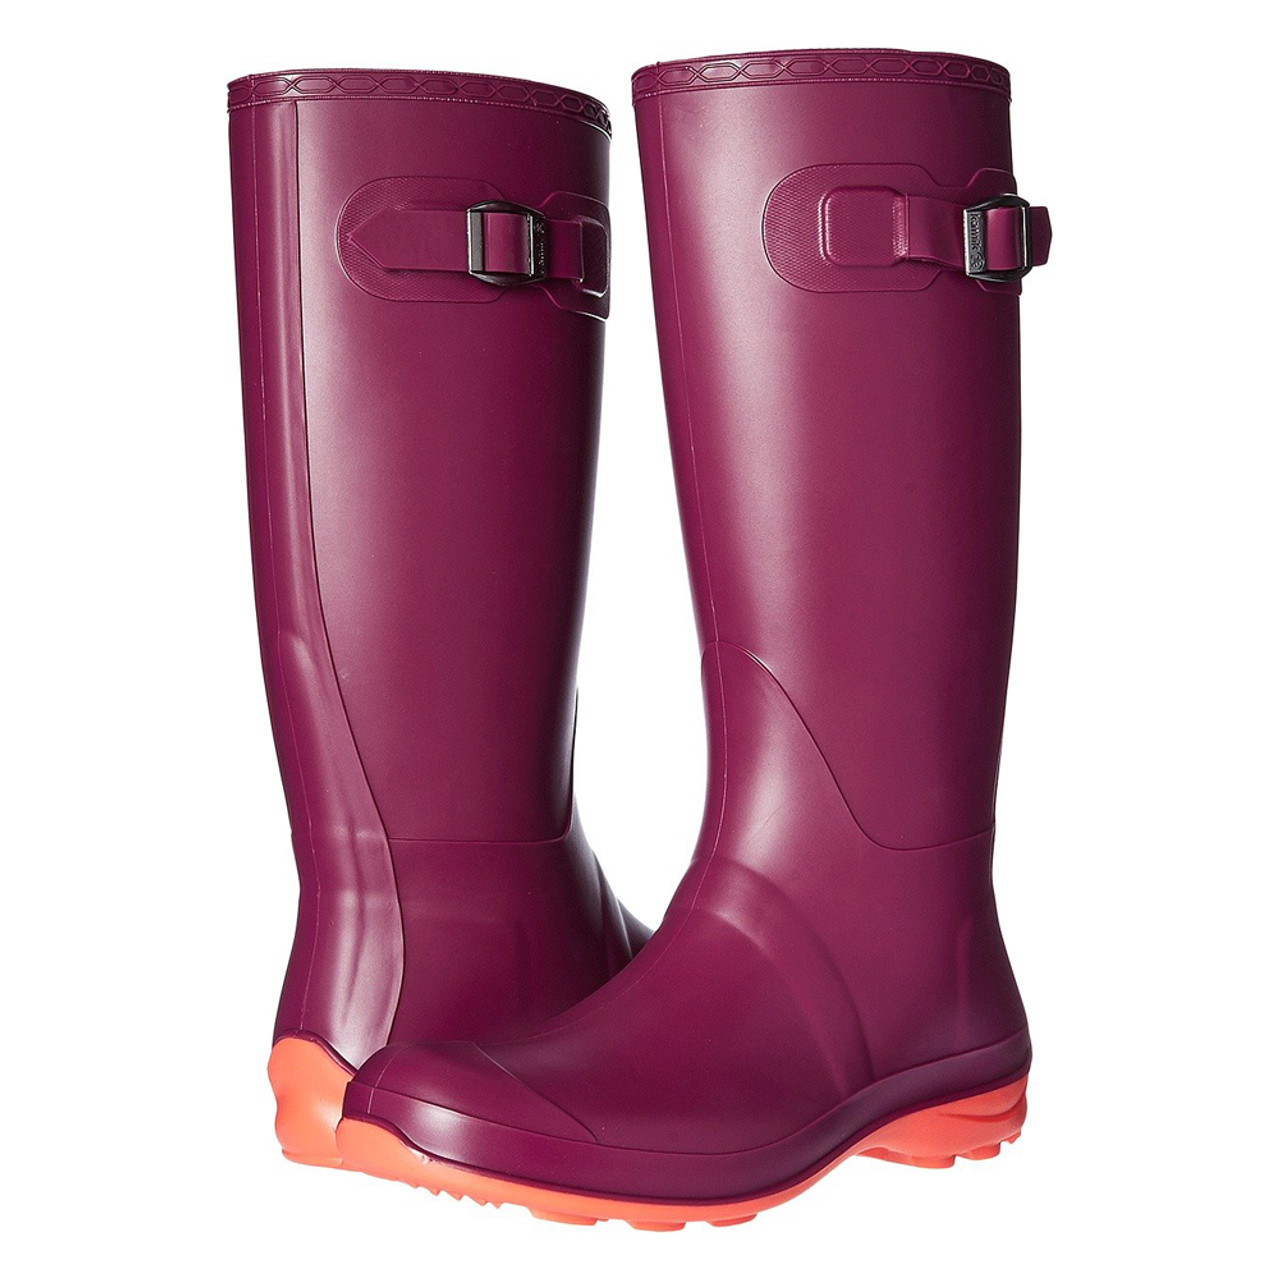 be504a526229 Kamik Women s Olivia Winter Boot Plum Coral - Shop now   Shoolu.com